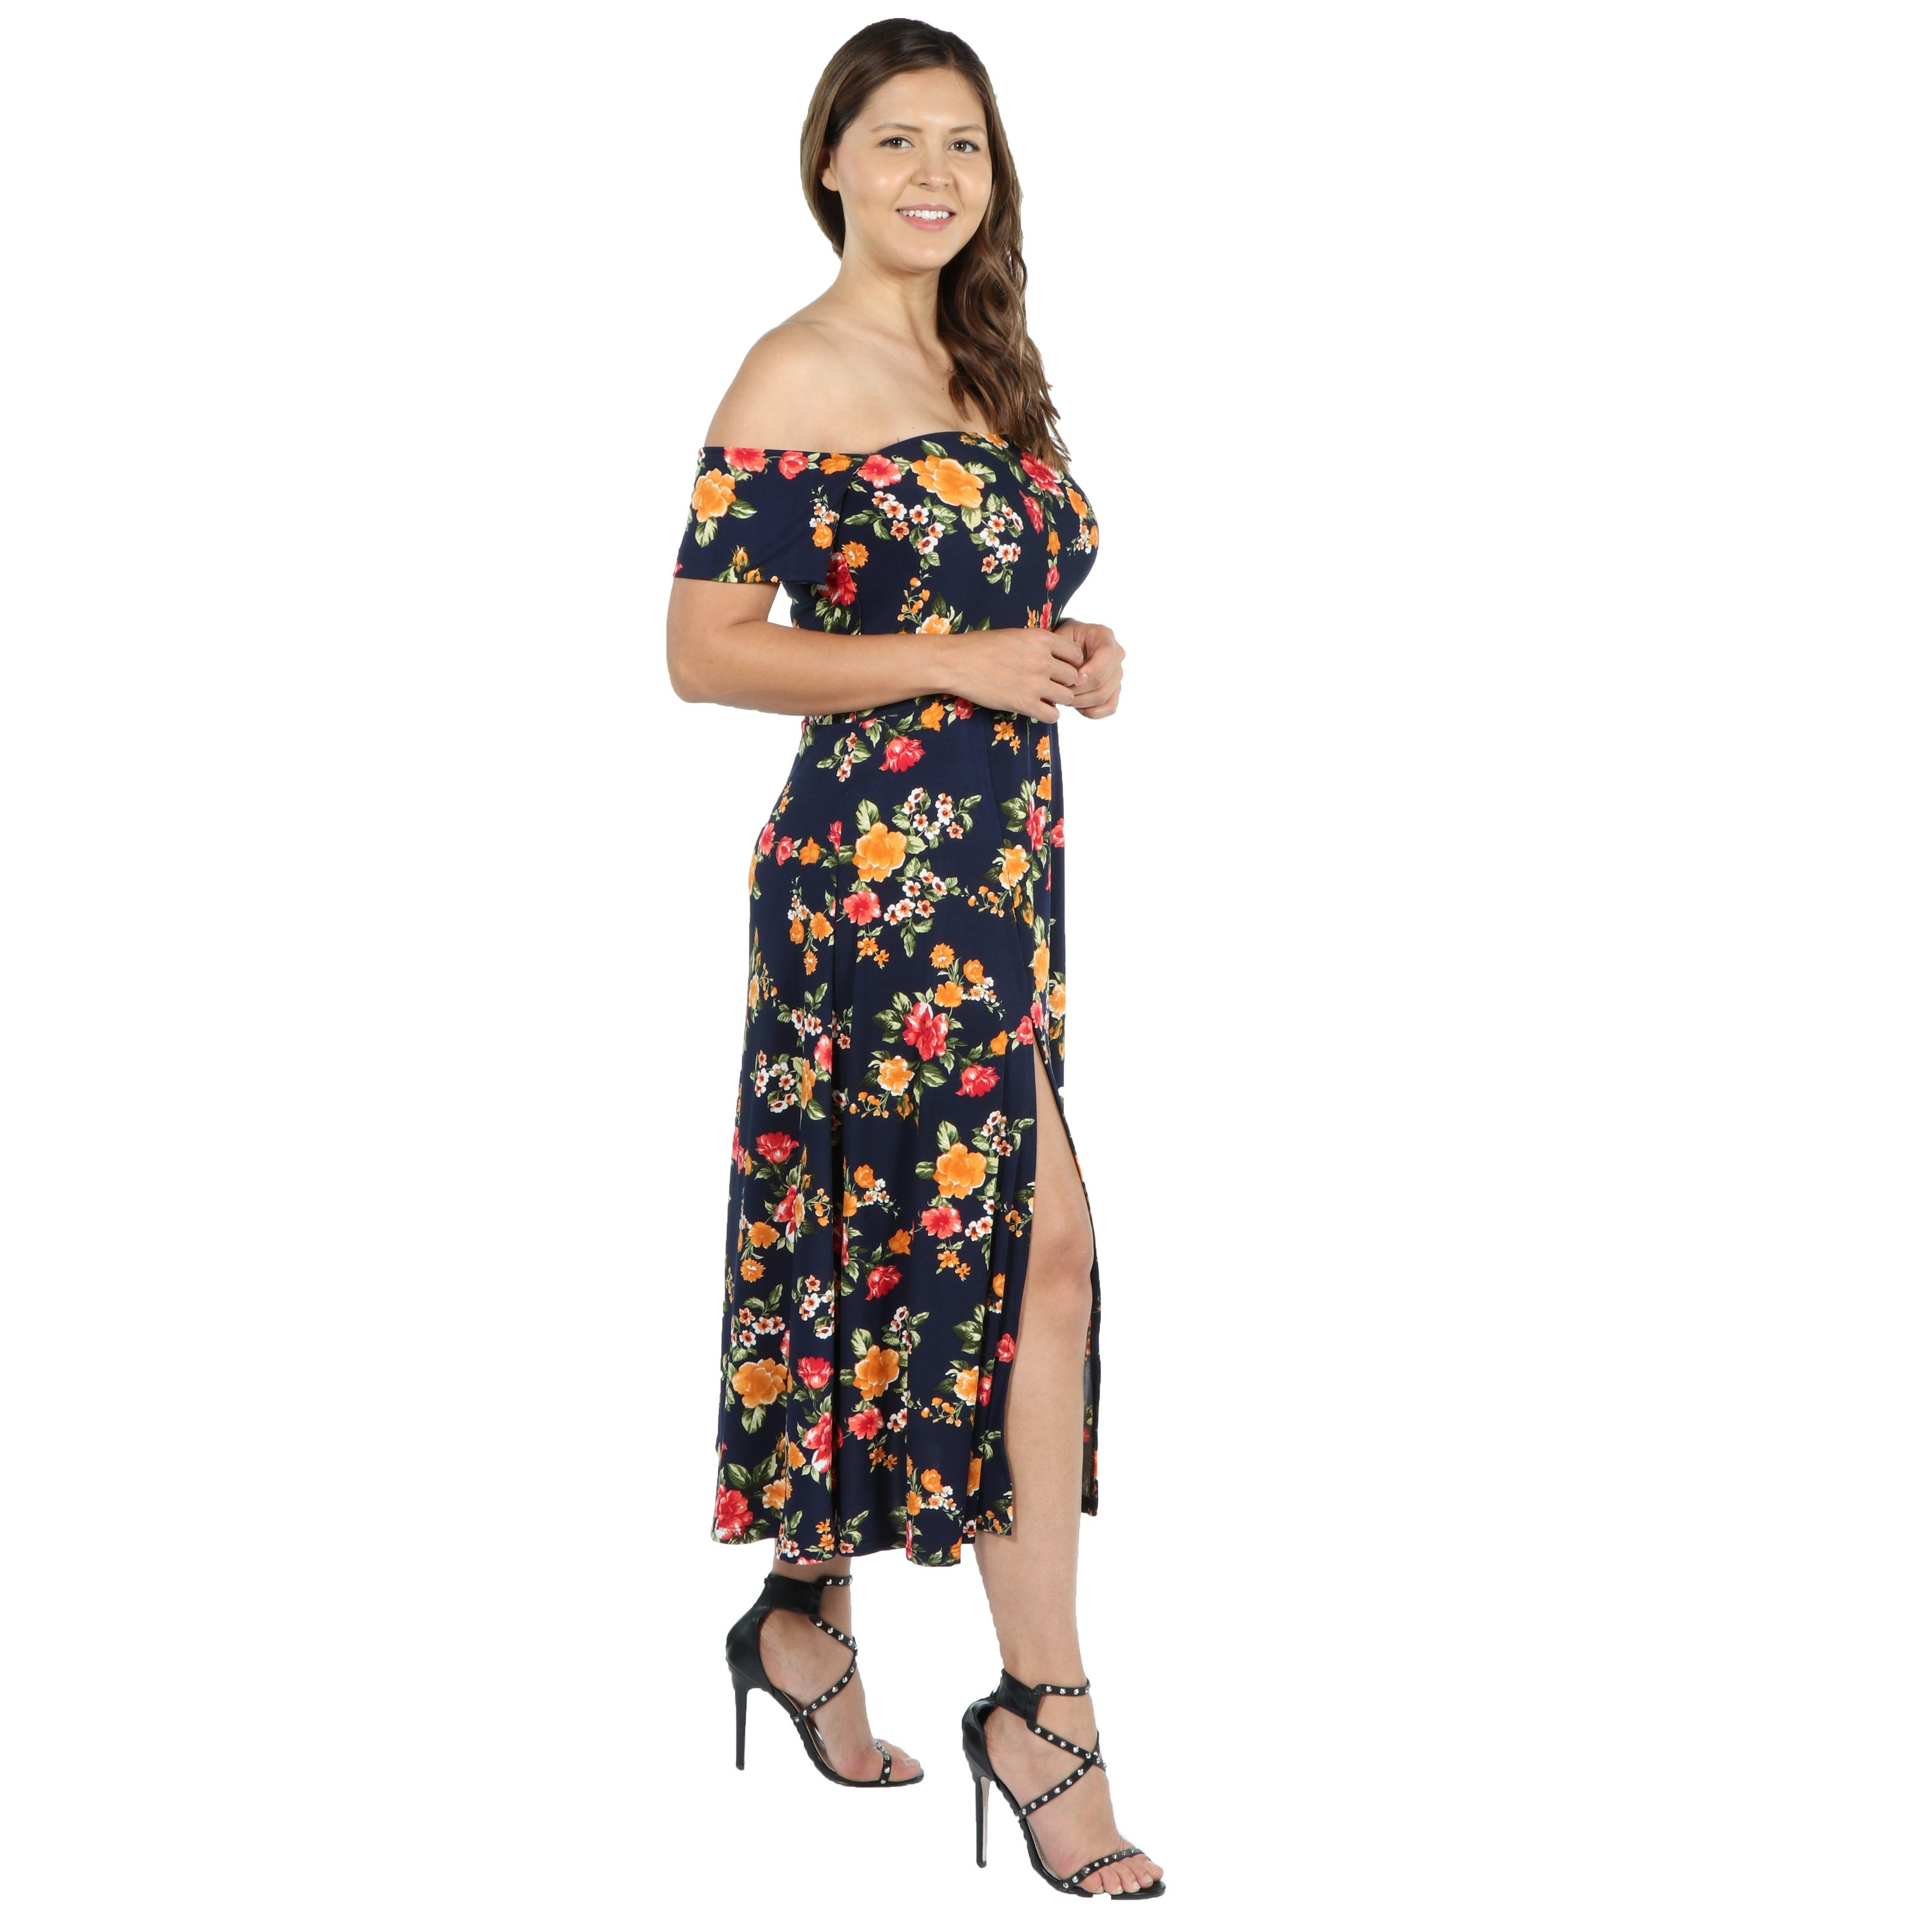 c9fdc50a83b75 Shop 24Seven Comfort Apparel Eleanor Navy Floral Side Slit Plus Size Dress  - Free Shipping Today - Overstock.com - 20685755